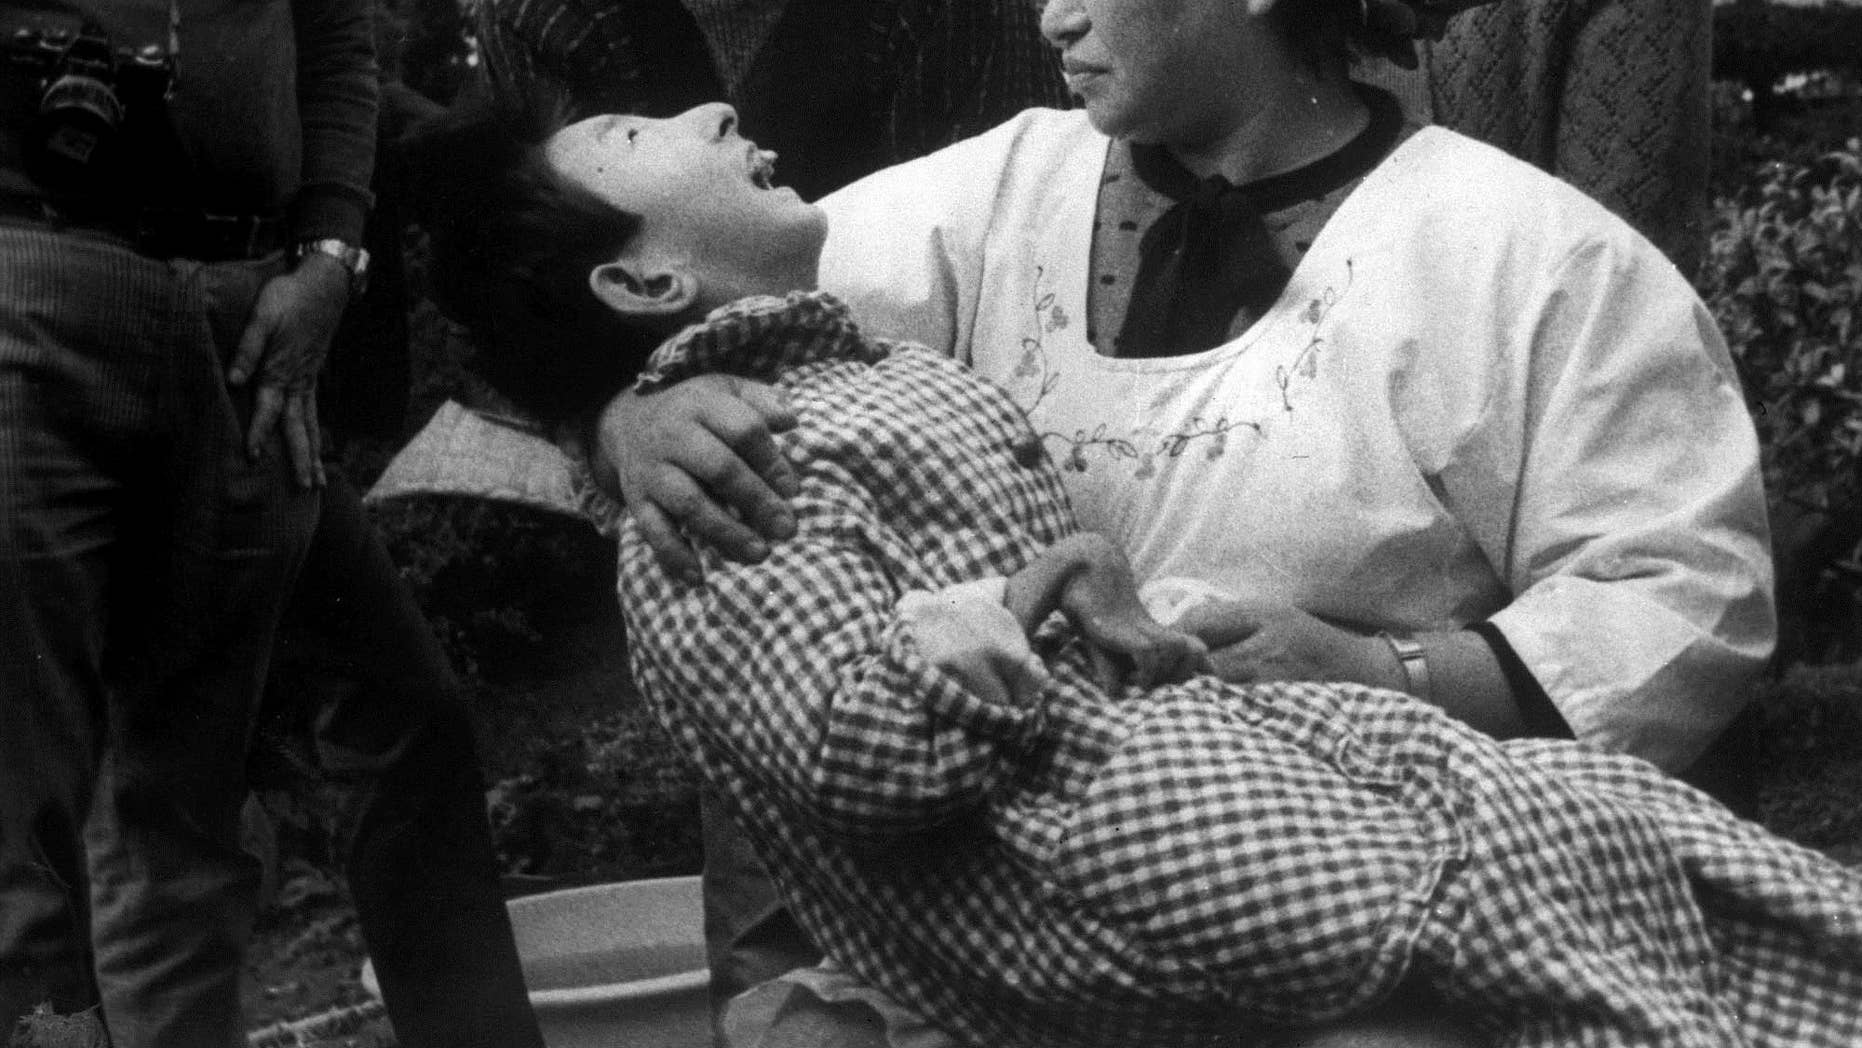 """FILE - In this 1973 photo, a woman holds a victim of """"Minamata Disease"""", or mercury poisoning, in Minamata, Japan. The girl has a malformed hand, like many victims of the disease who suffer from physical deformites among other symptoms. The Tokyo District Court has rejected a civil lawsuit demanding that tests into food toxicity and illnesses required by law be carried out for """"Minamata disease"""" poisoning. Doctor Toshihide Tsuda, who sued, said Wednesday, Dec. 7, 2016, he would appeal the court's decision. (AP Photo, File)"""